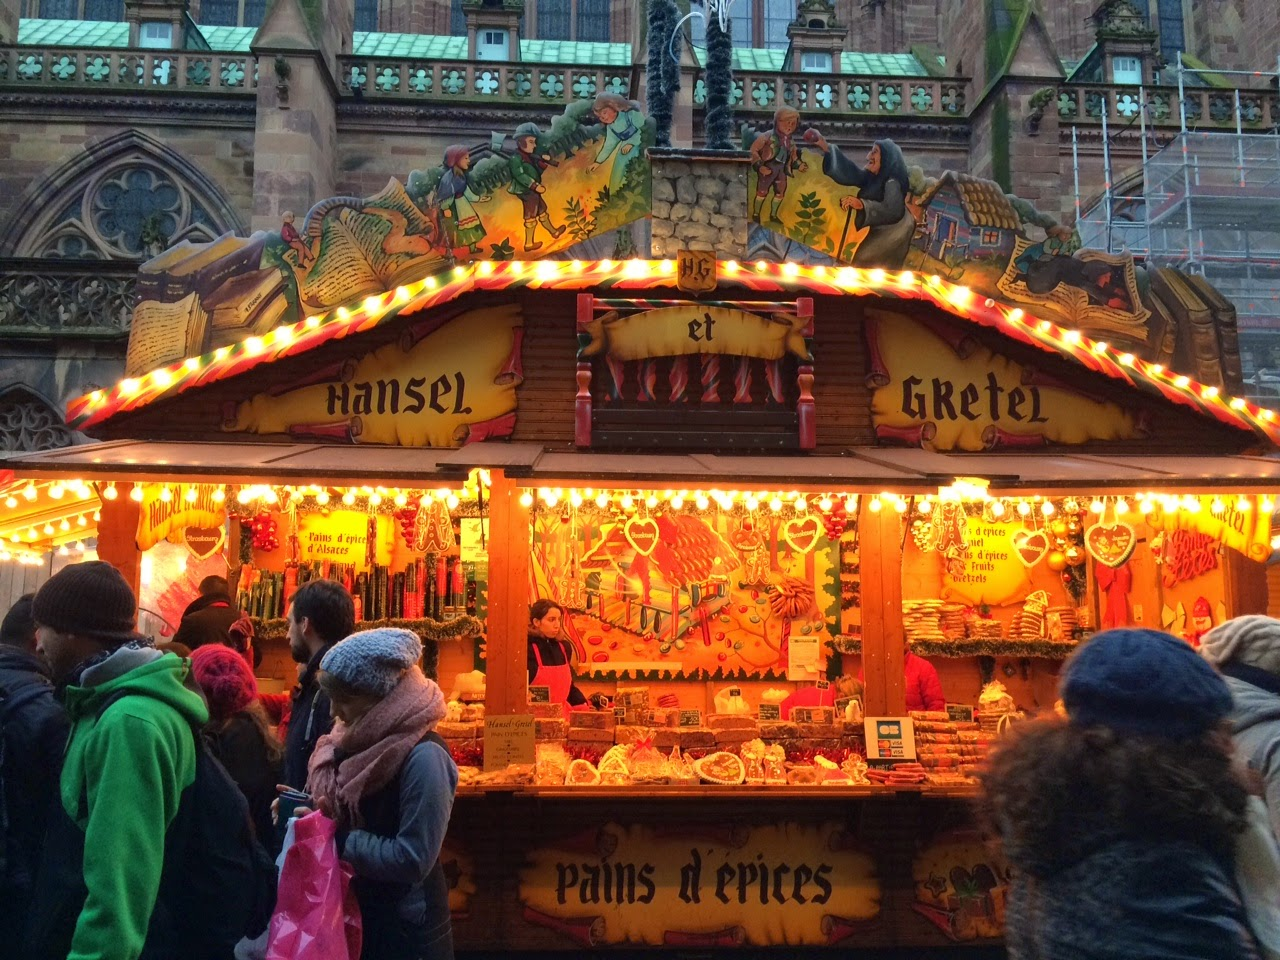 Sweets at a Christmas market in Strasbourg, France